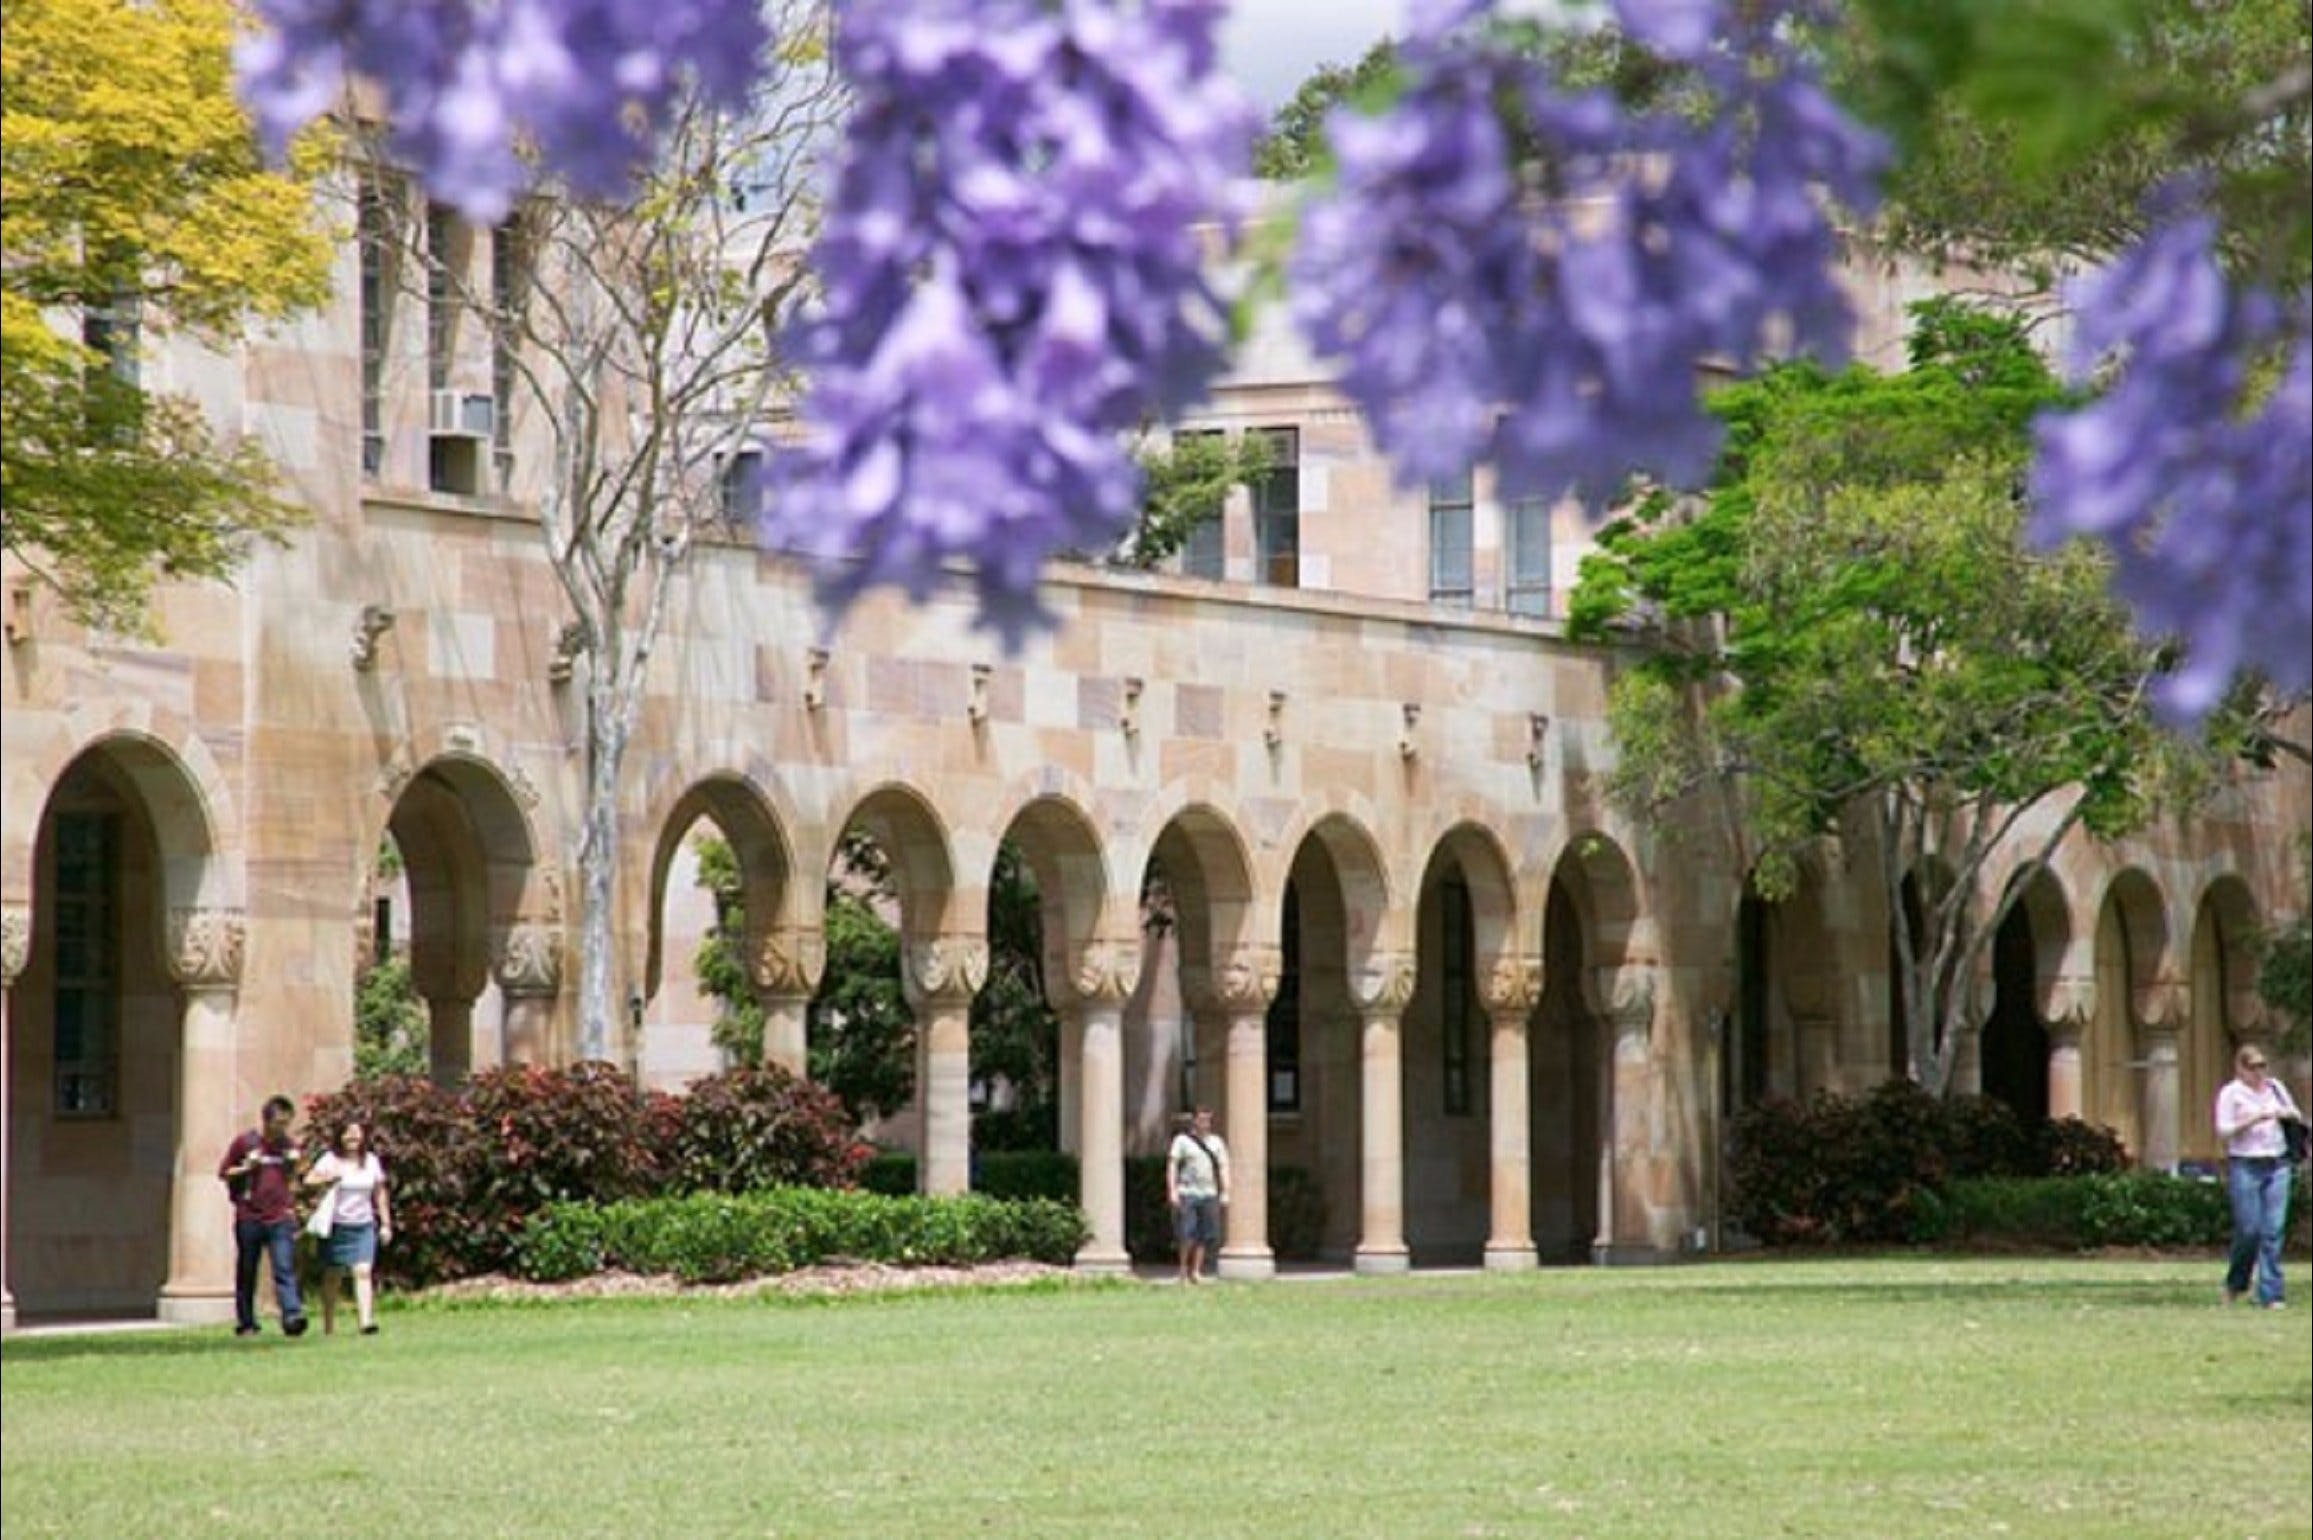 The University of Queensland Logo and Images